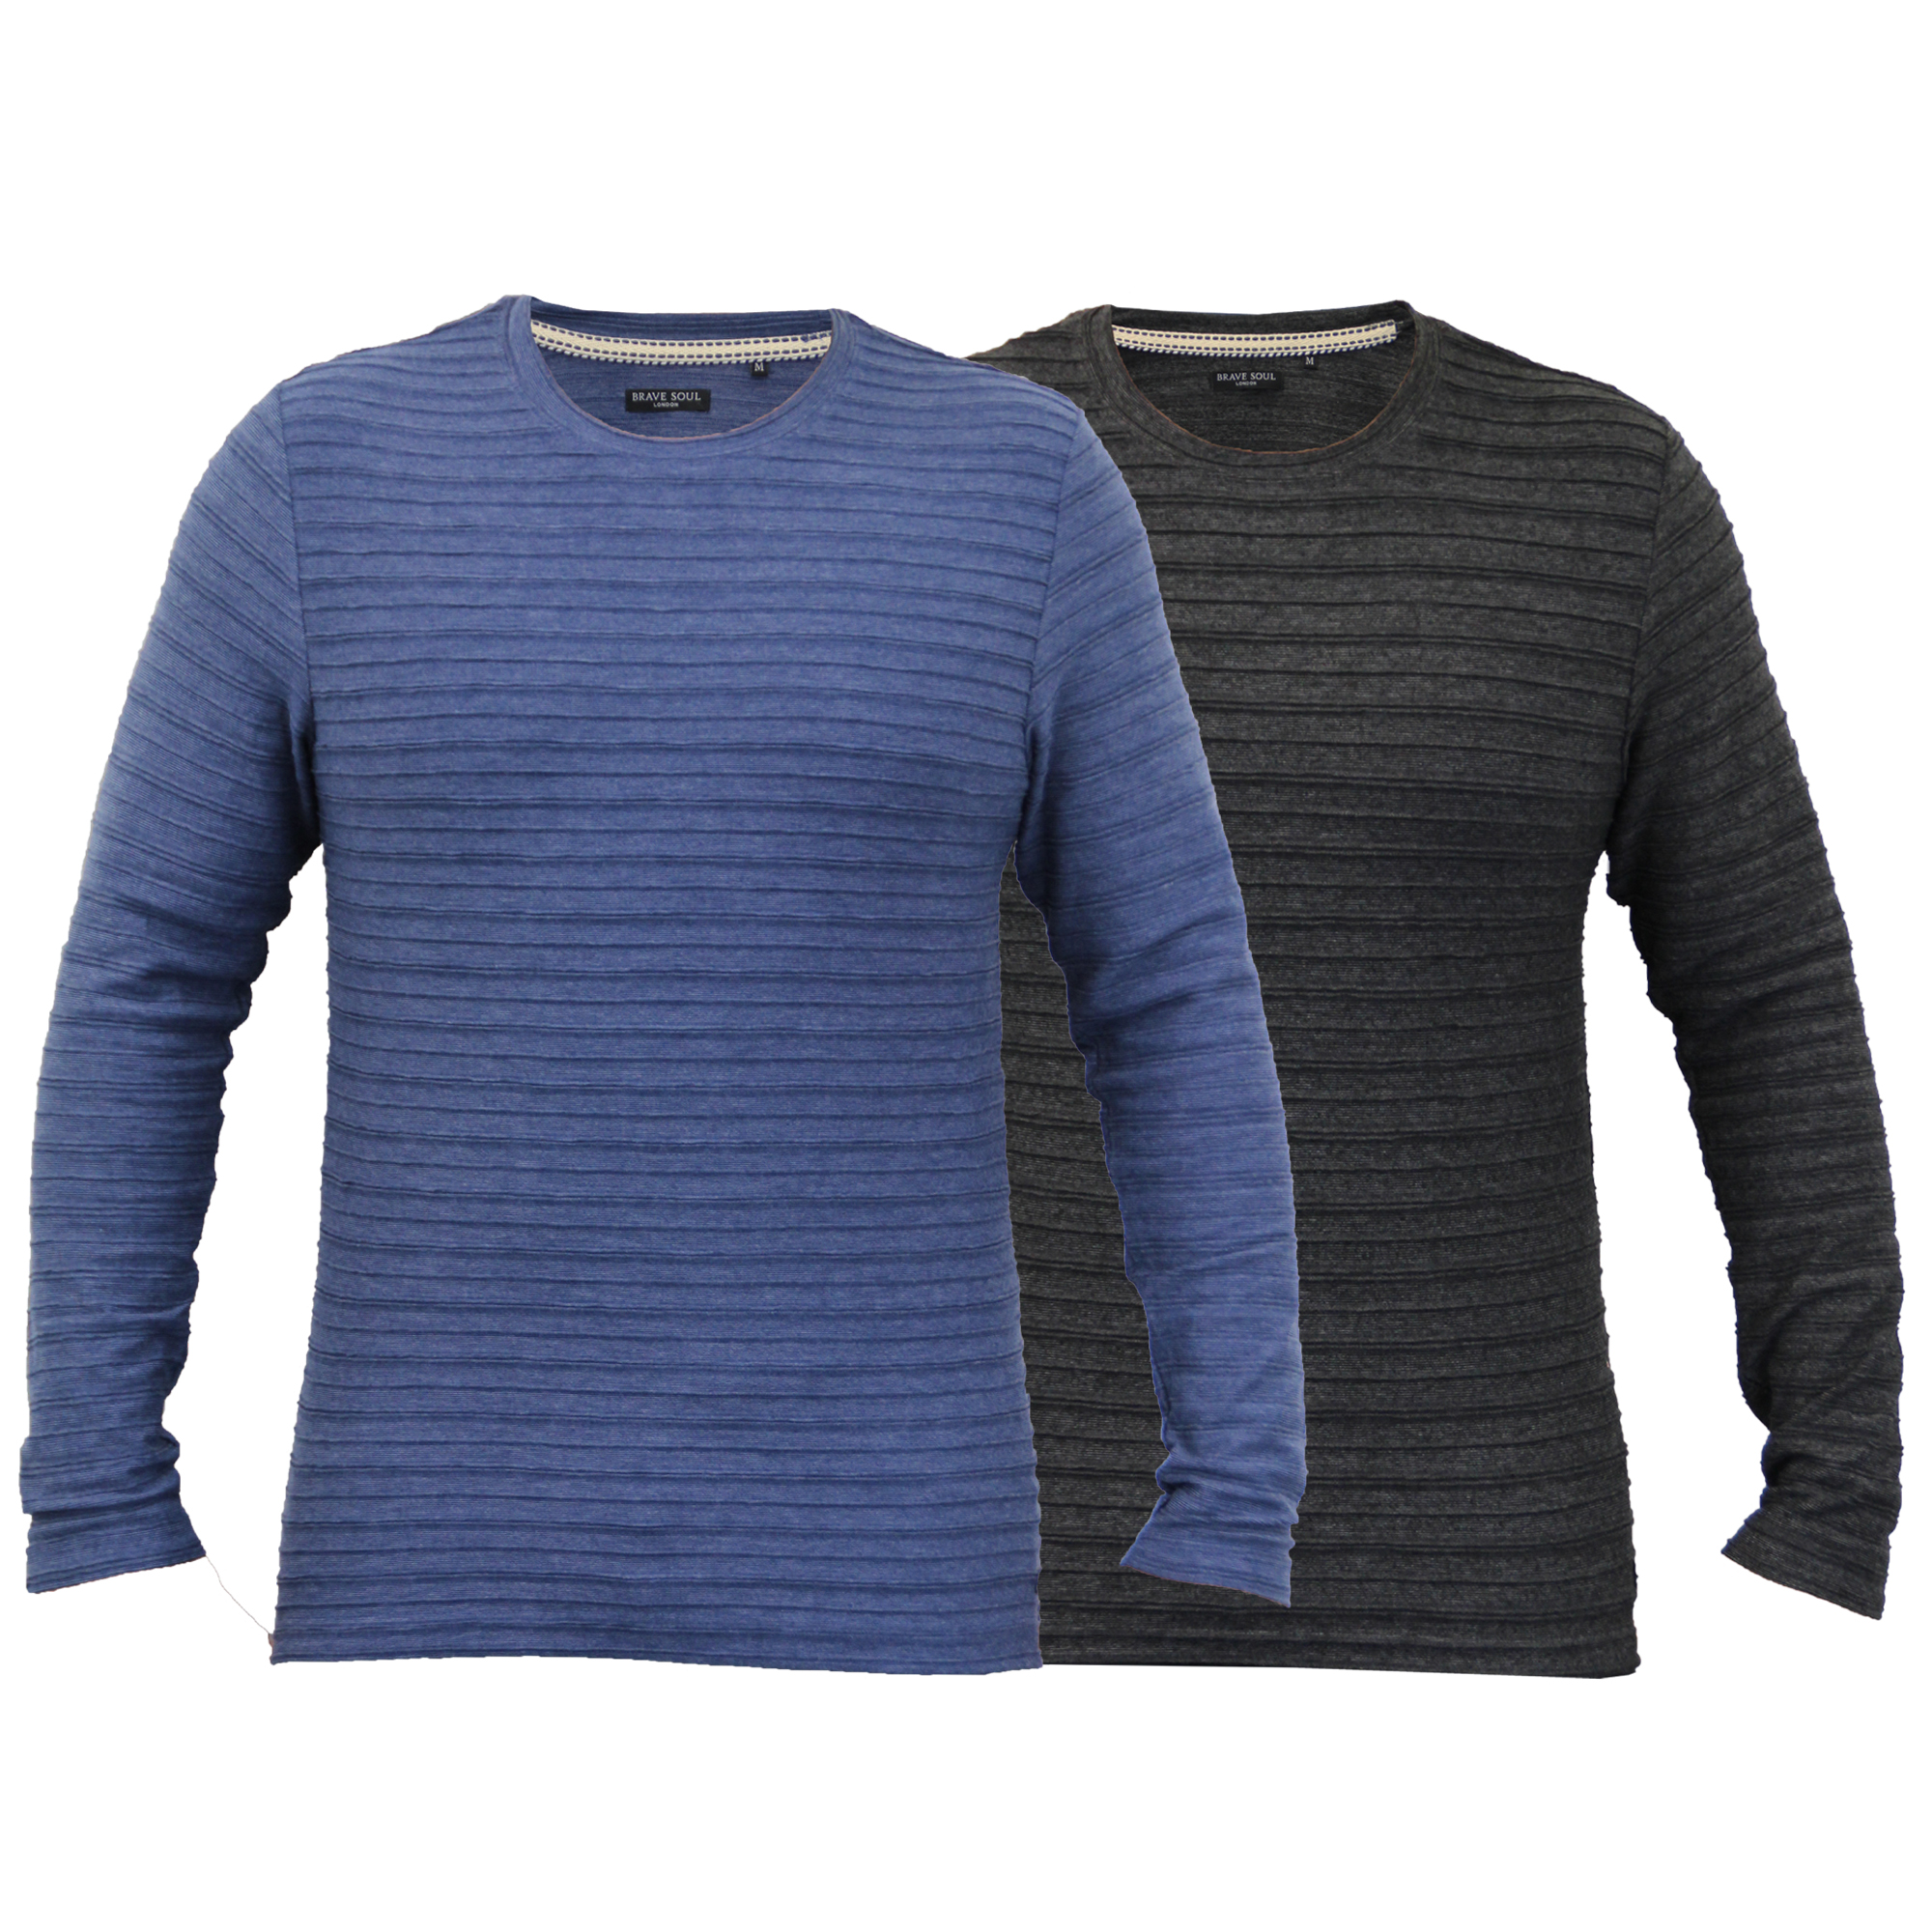 21477a6124db3e Details about mens long sleeved jersey top Brave Soul t shirt plain crew  neck ribbed summer